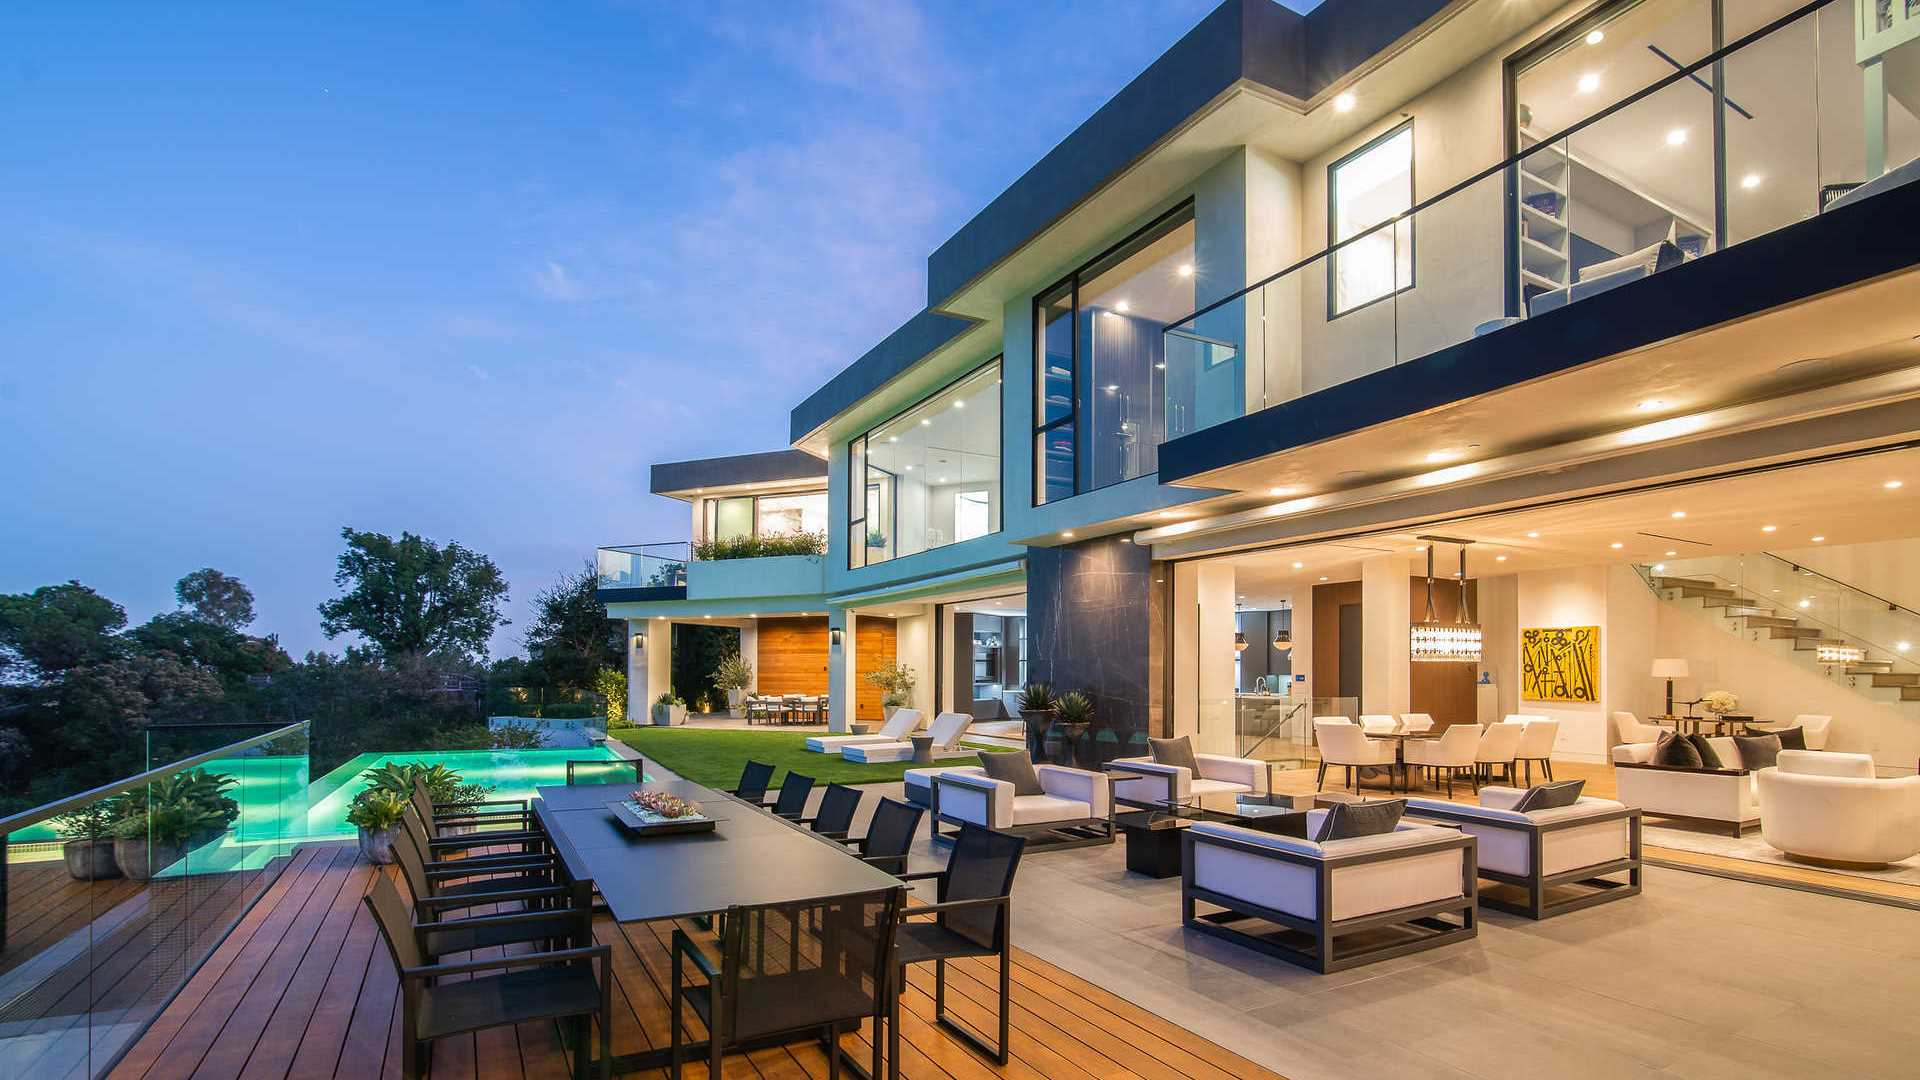 Mango Way modern home with extraordinary unobstructed views of Los Angeles